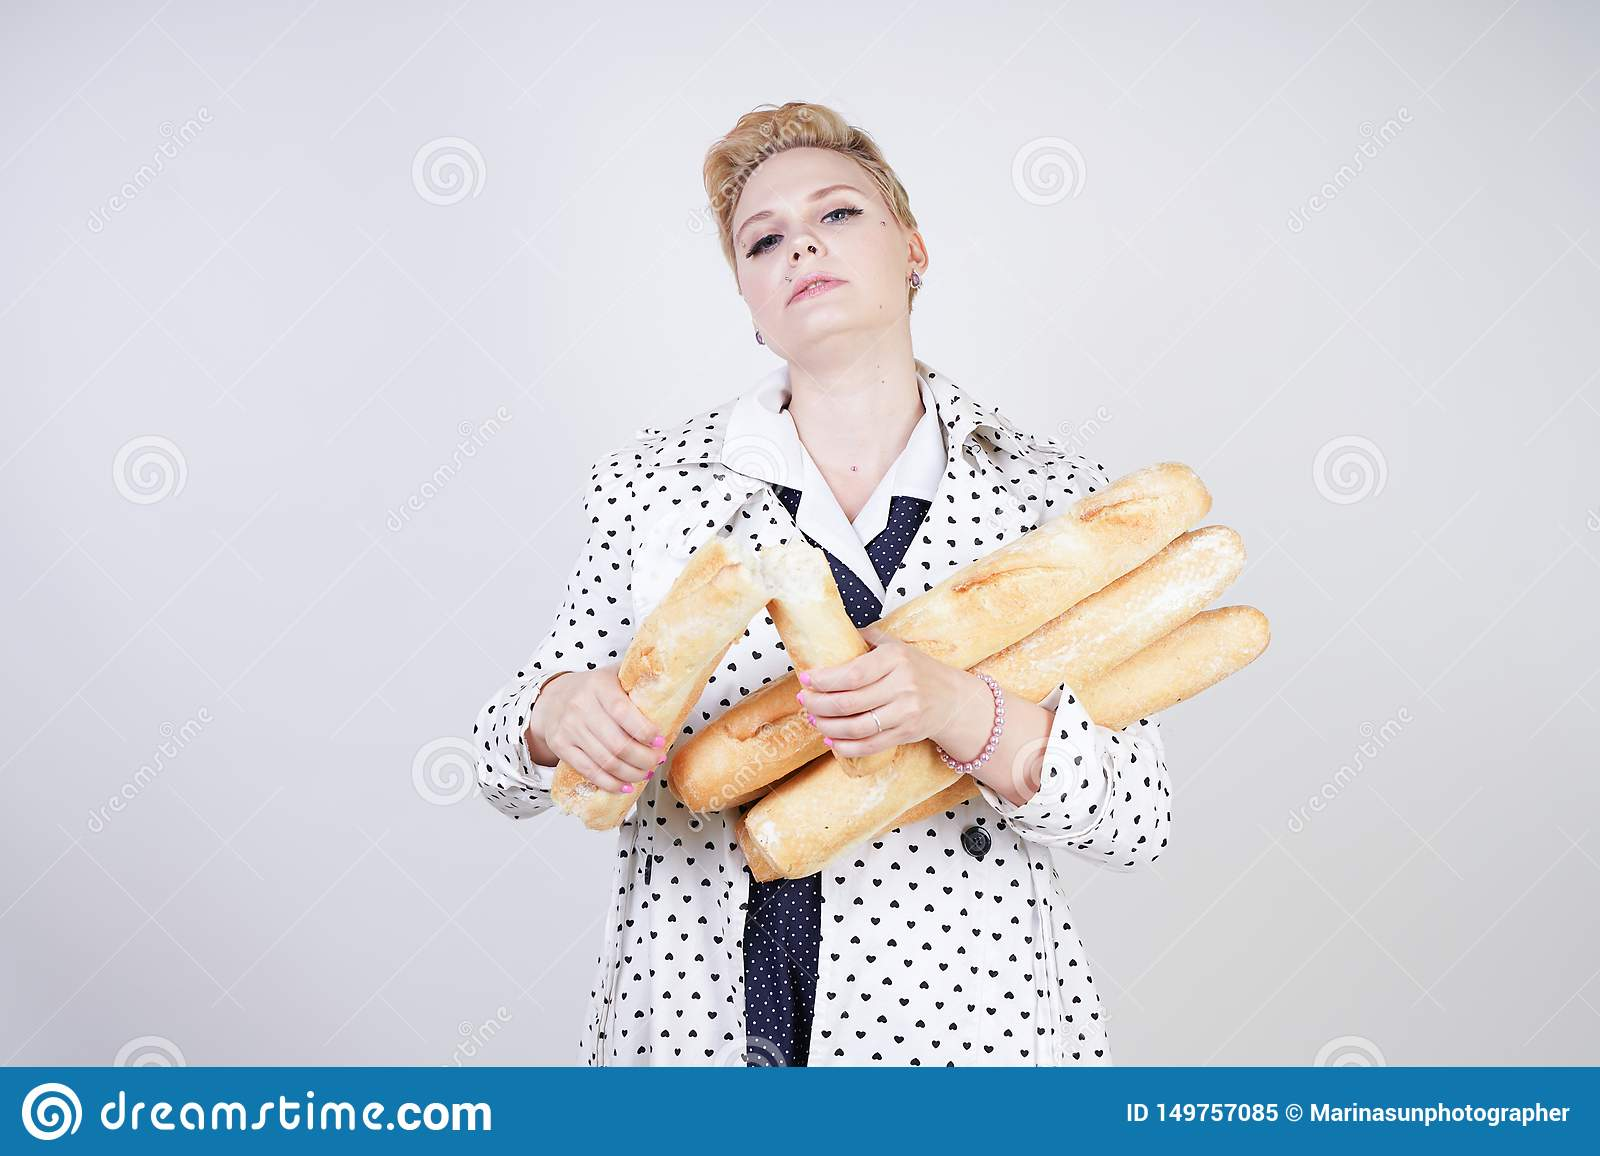 Charming pinup woman with short hair in a spring coat with polka dots posing with baguettes and enjoying them on a white backgroun